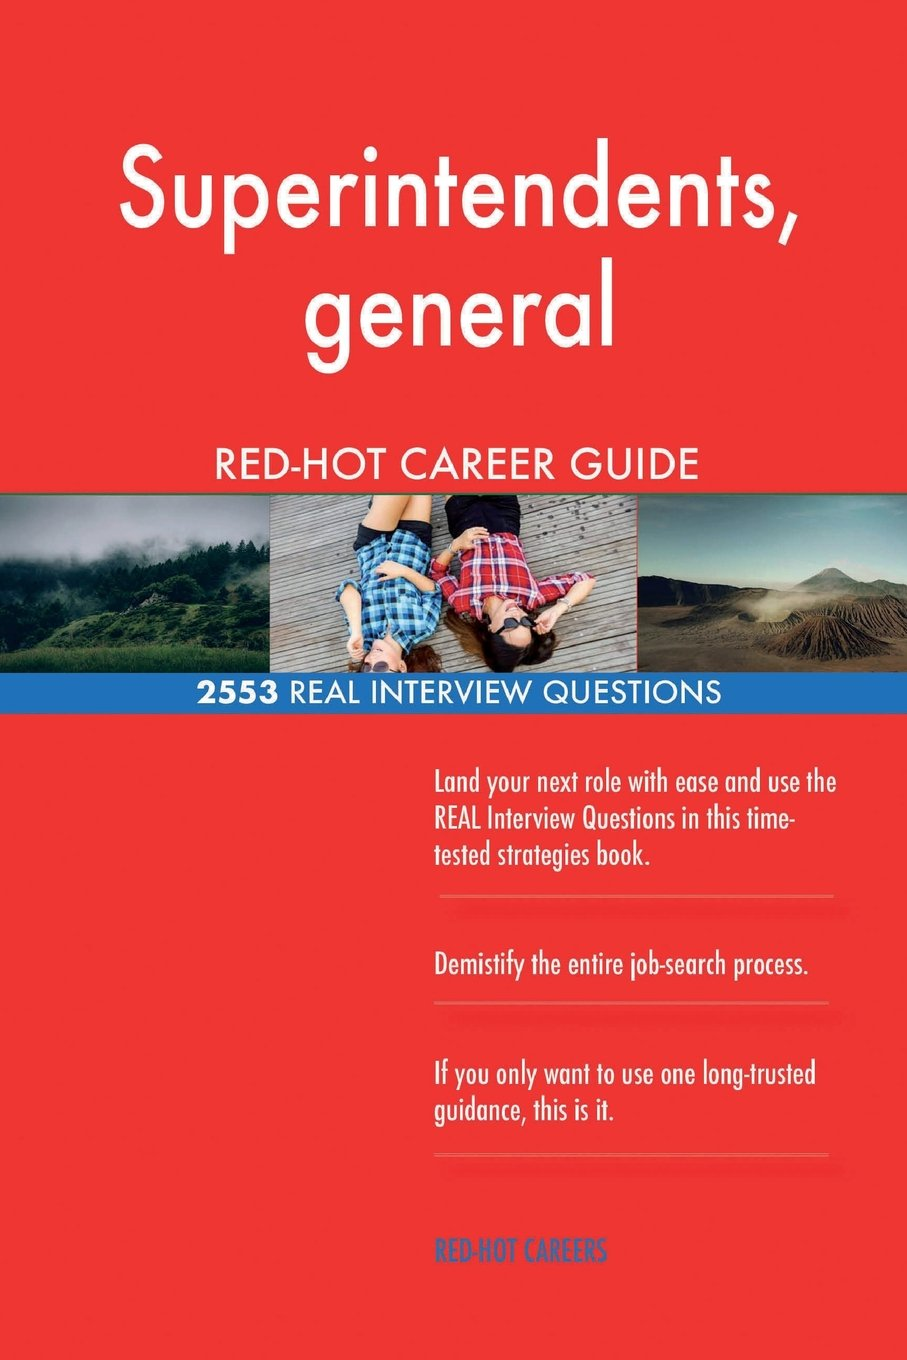 Download Superintendents, general RED-HOT Career Guide; 2553 REAL Interview Questions PDF